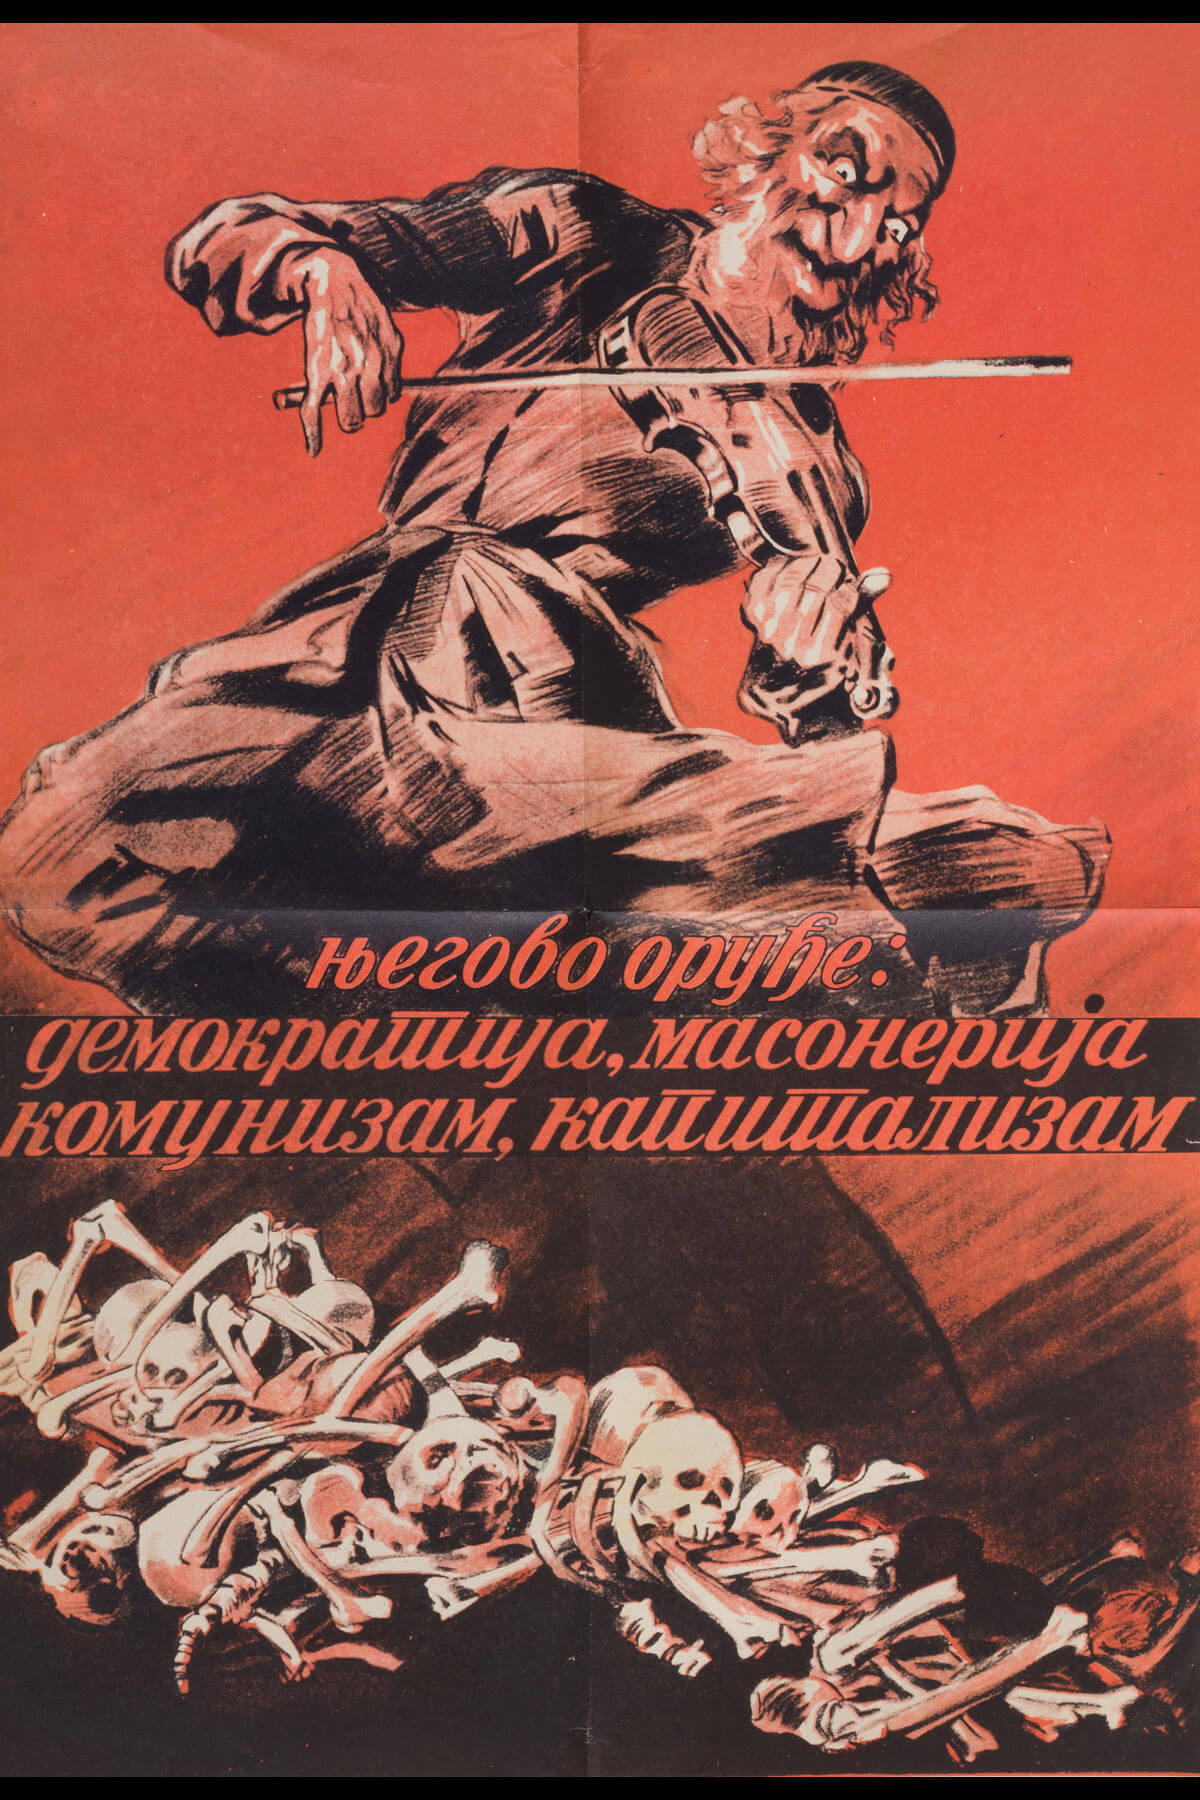 177. An Anti-Semitic Poster Published by the Yugoslav Nazi Party in Belgrade, Serbia